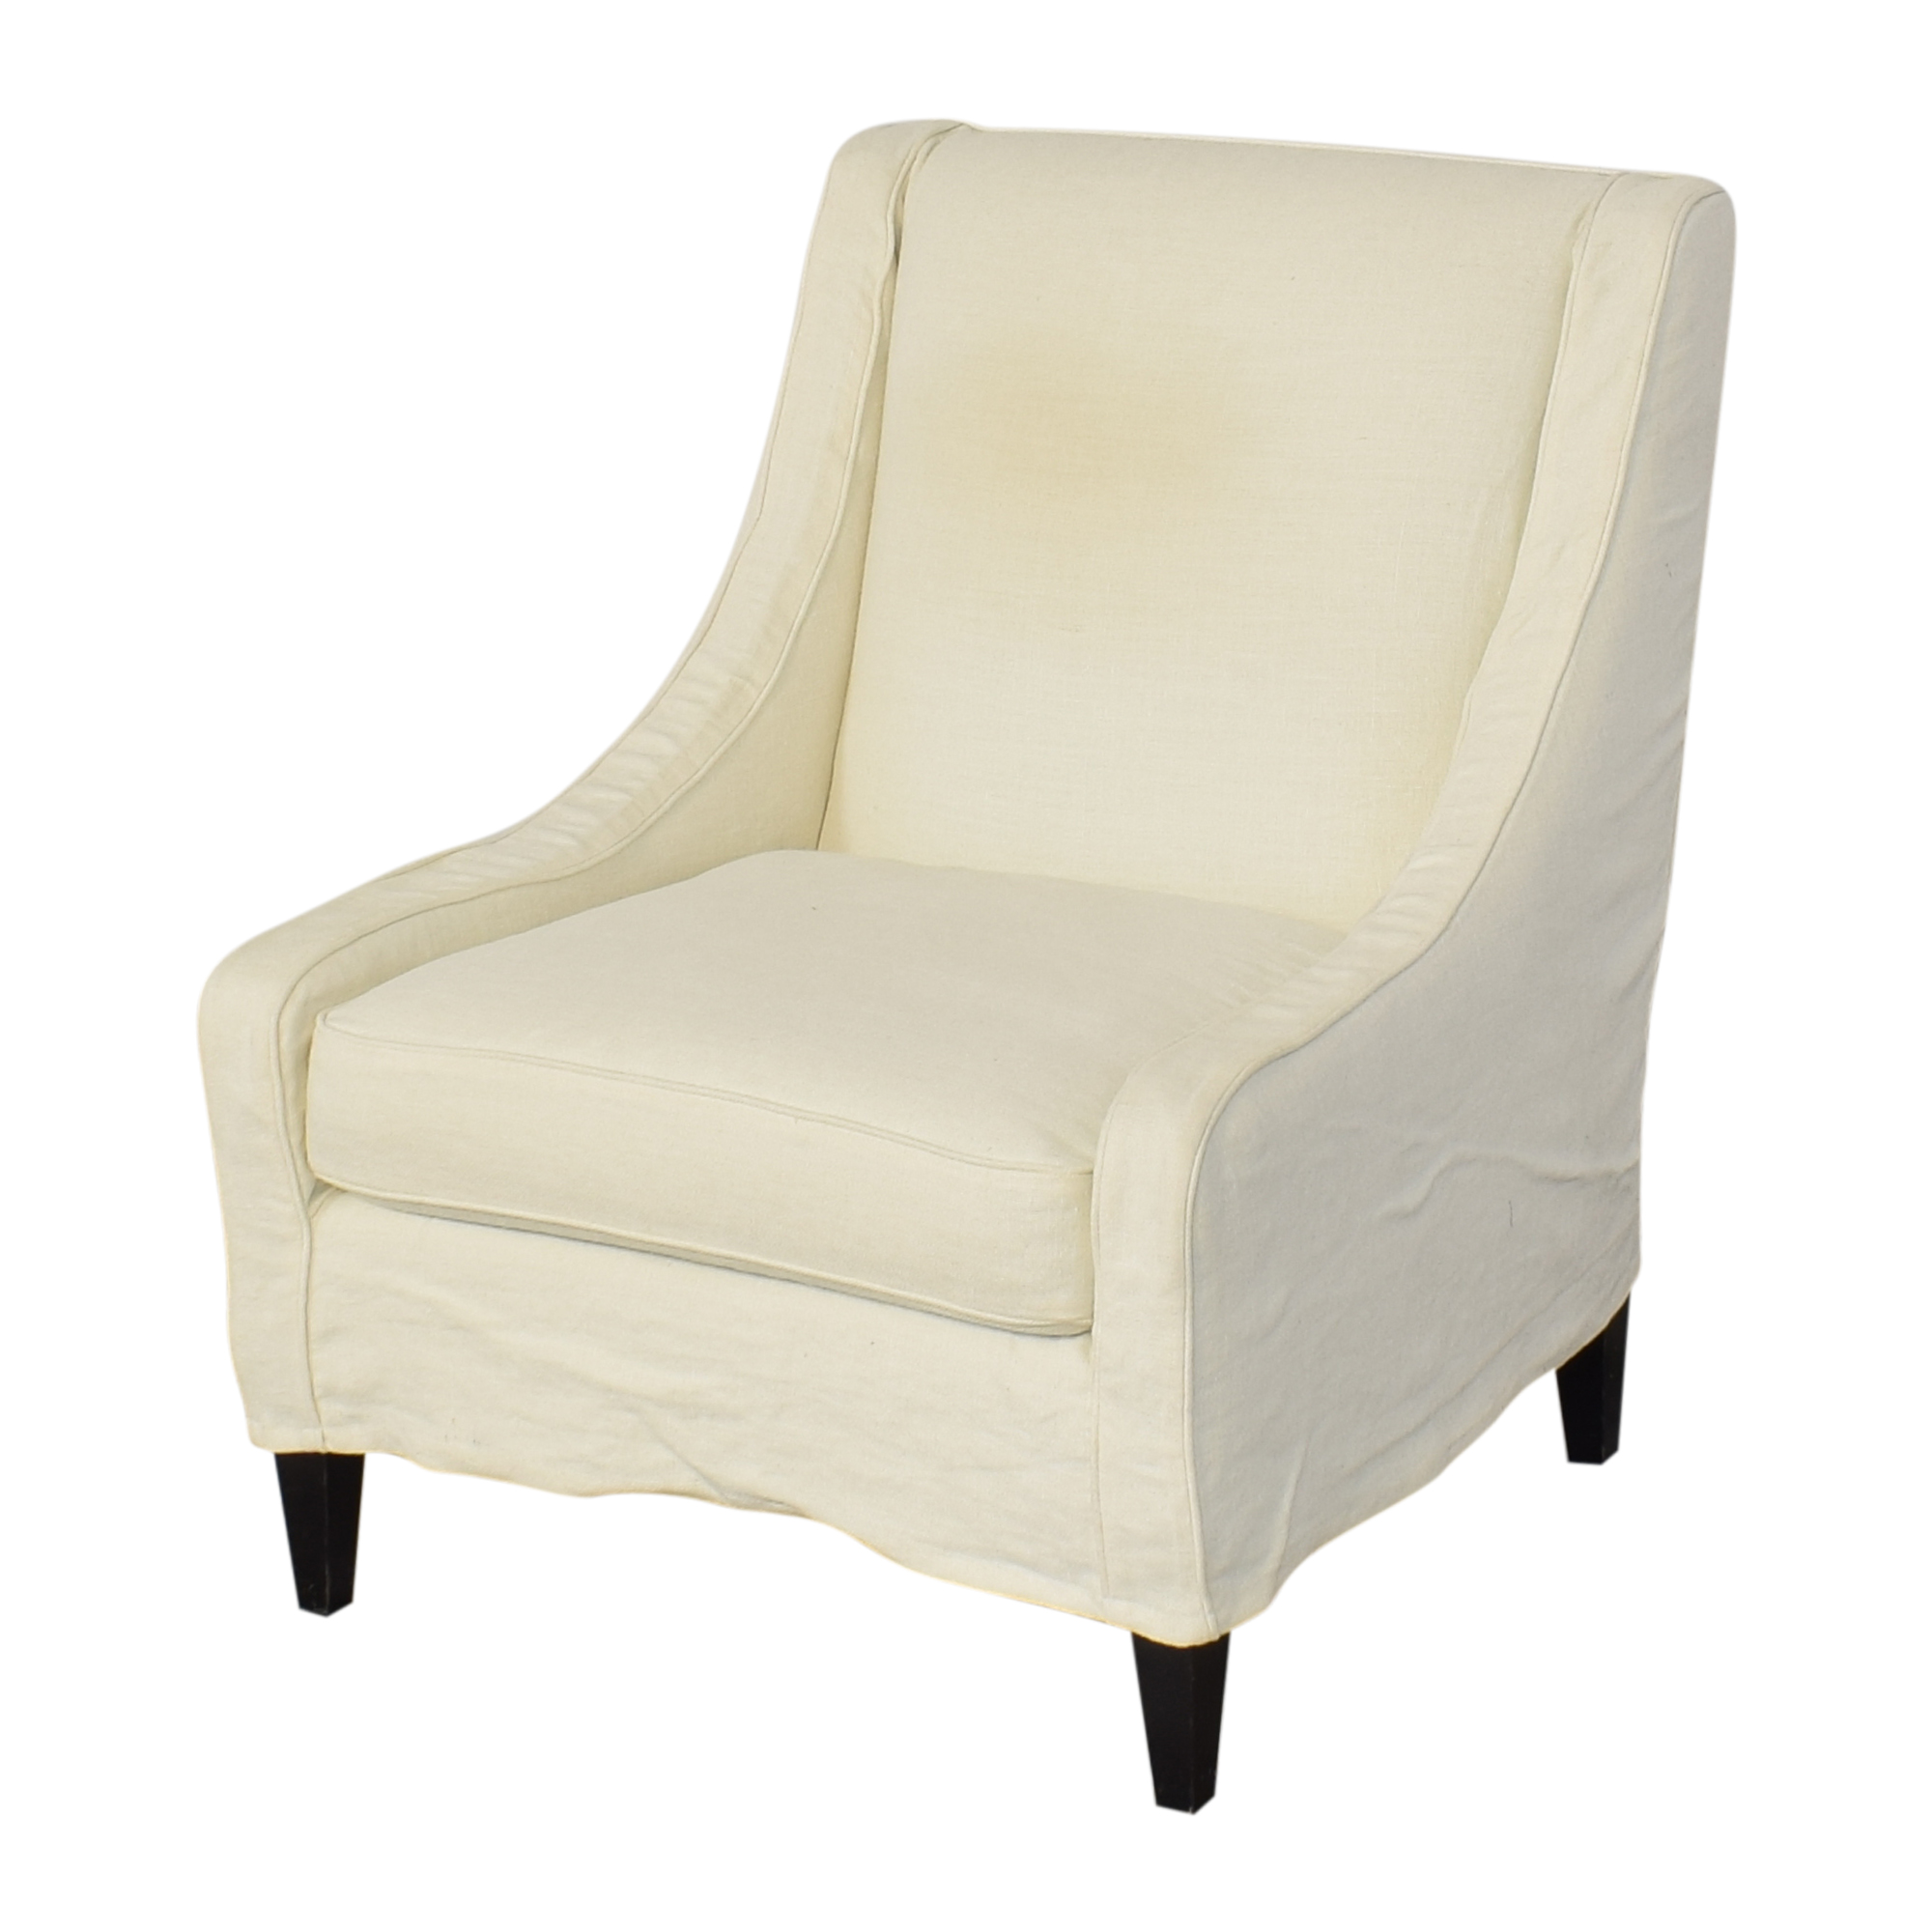 shop Crate & Barrel Slipcovered Accent Chair Crate & Barrel Chairs